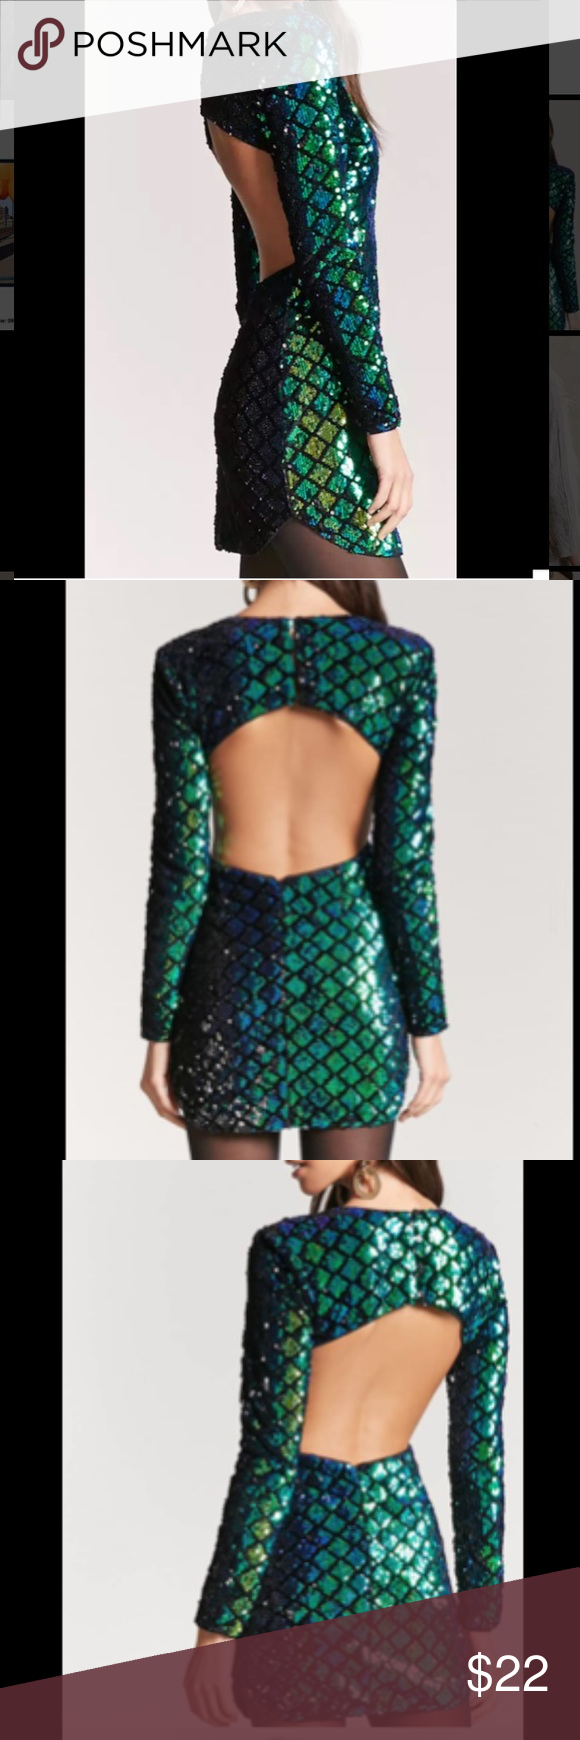 New look long sleeve bodycon dress in multi coloured sequin